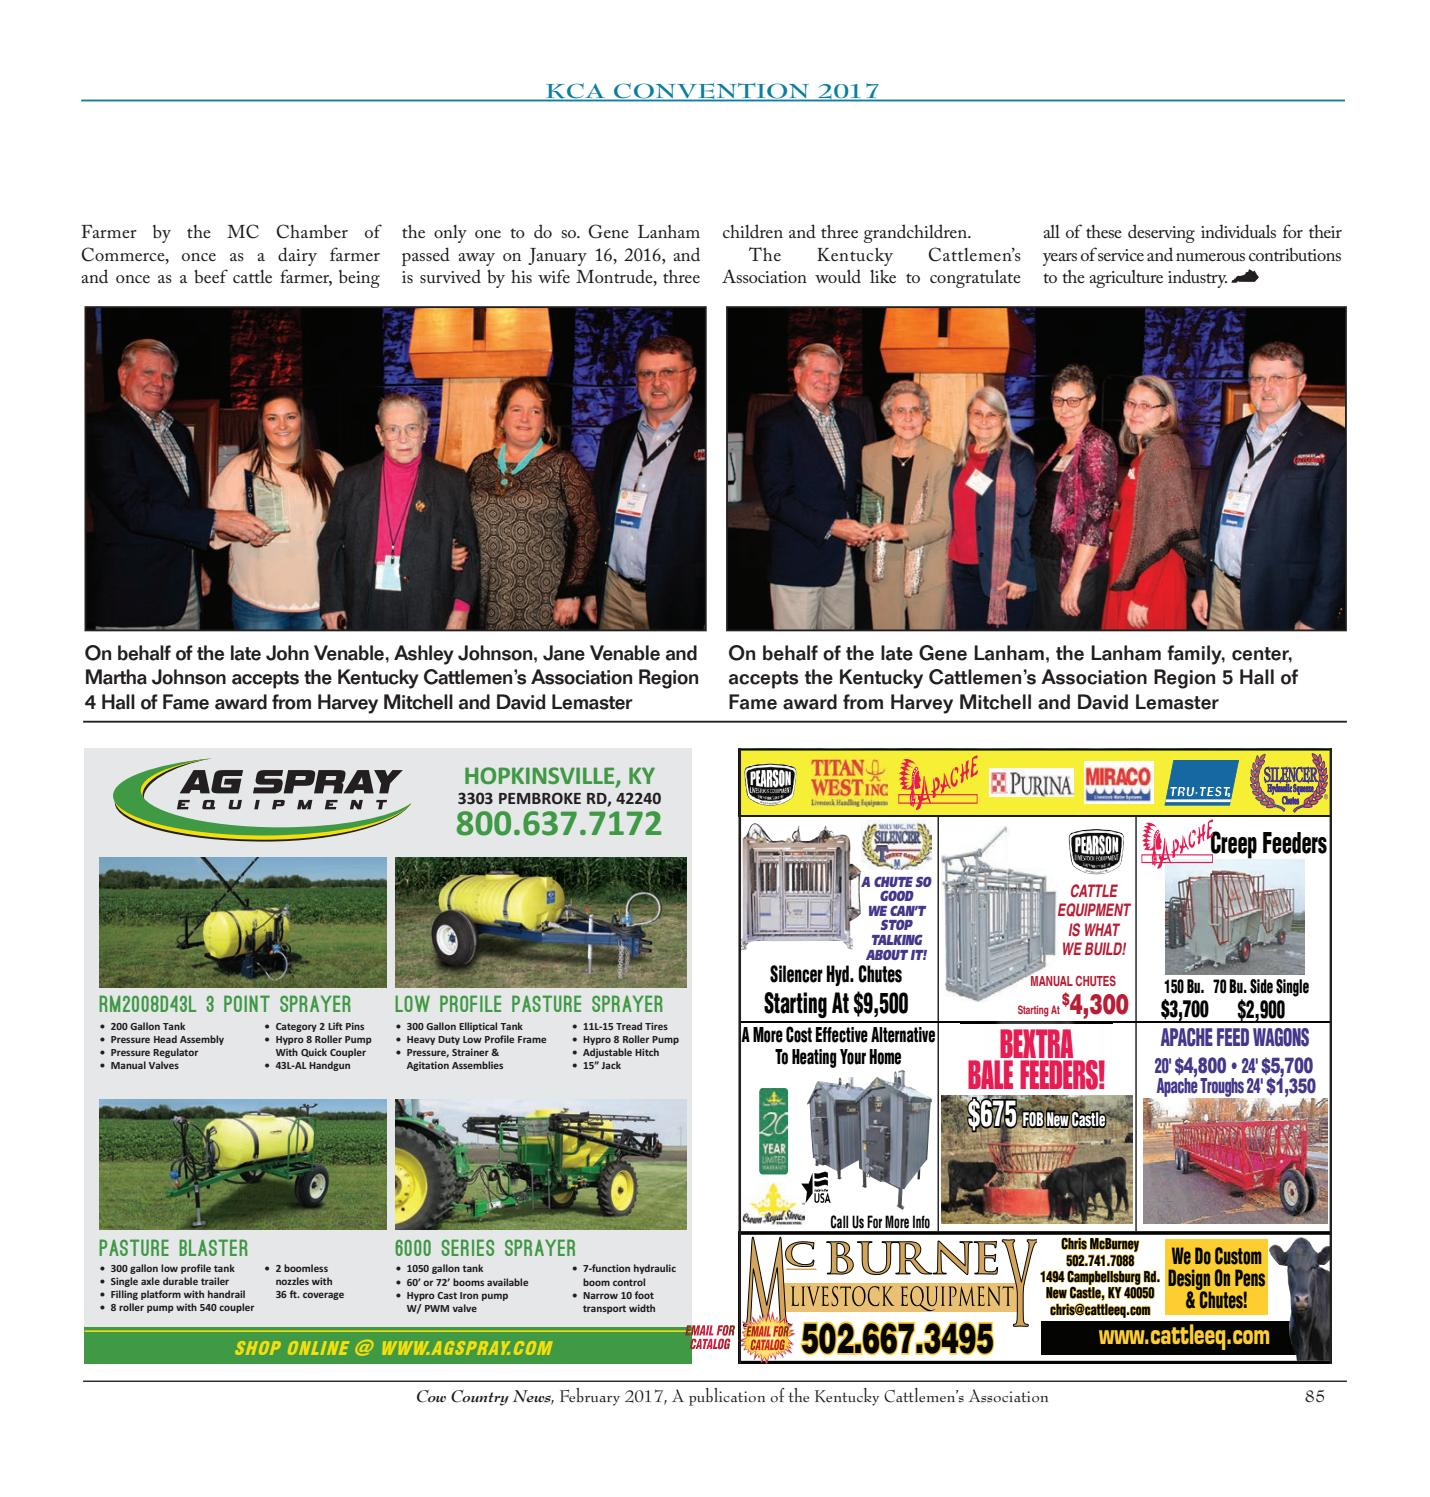 Cow Country News - February 2017 by The Kentucky Cattlemen's